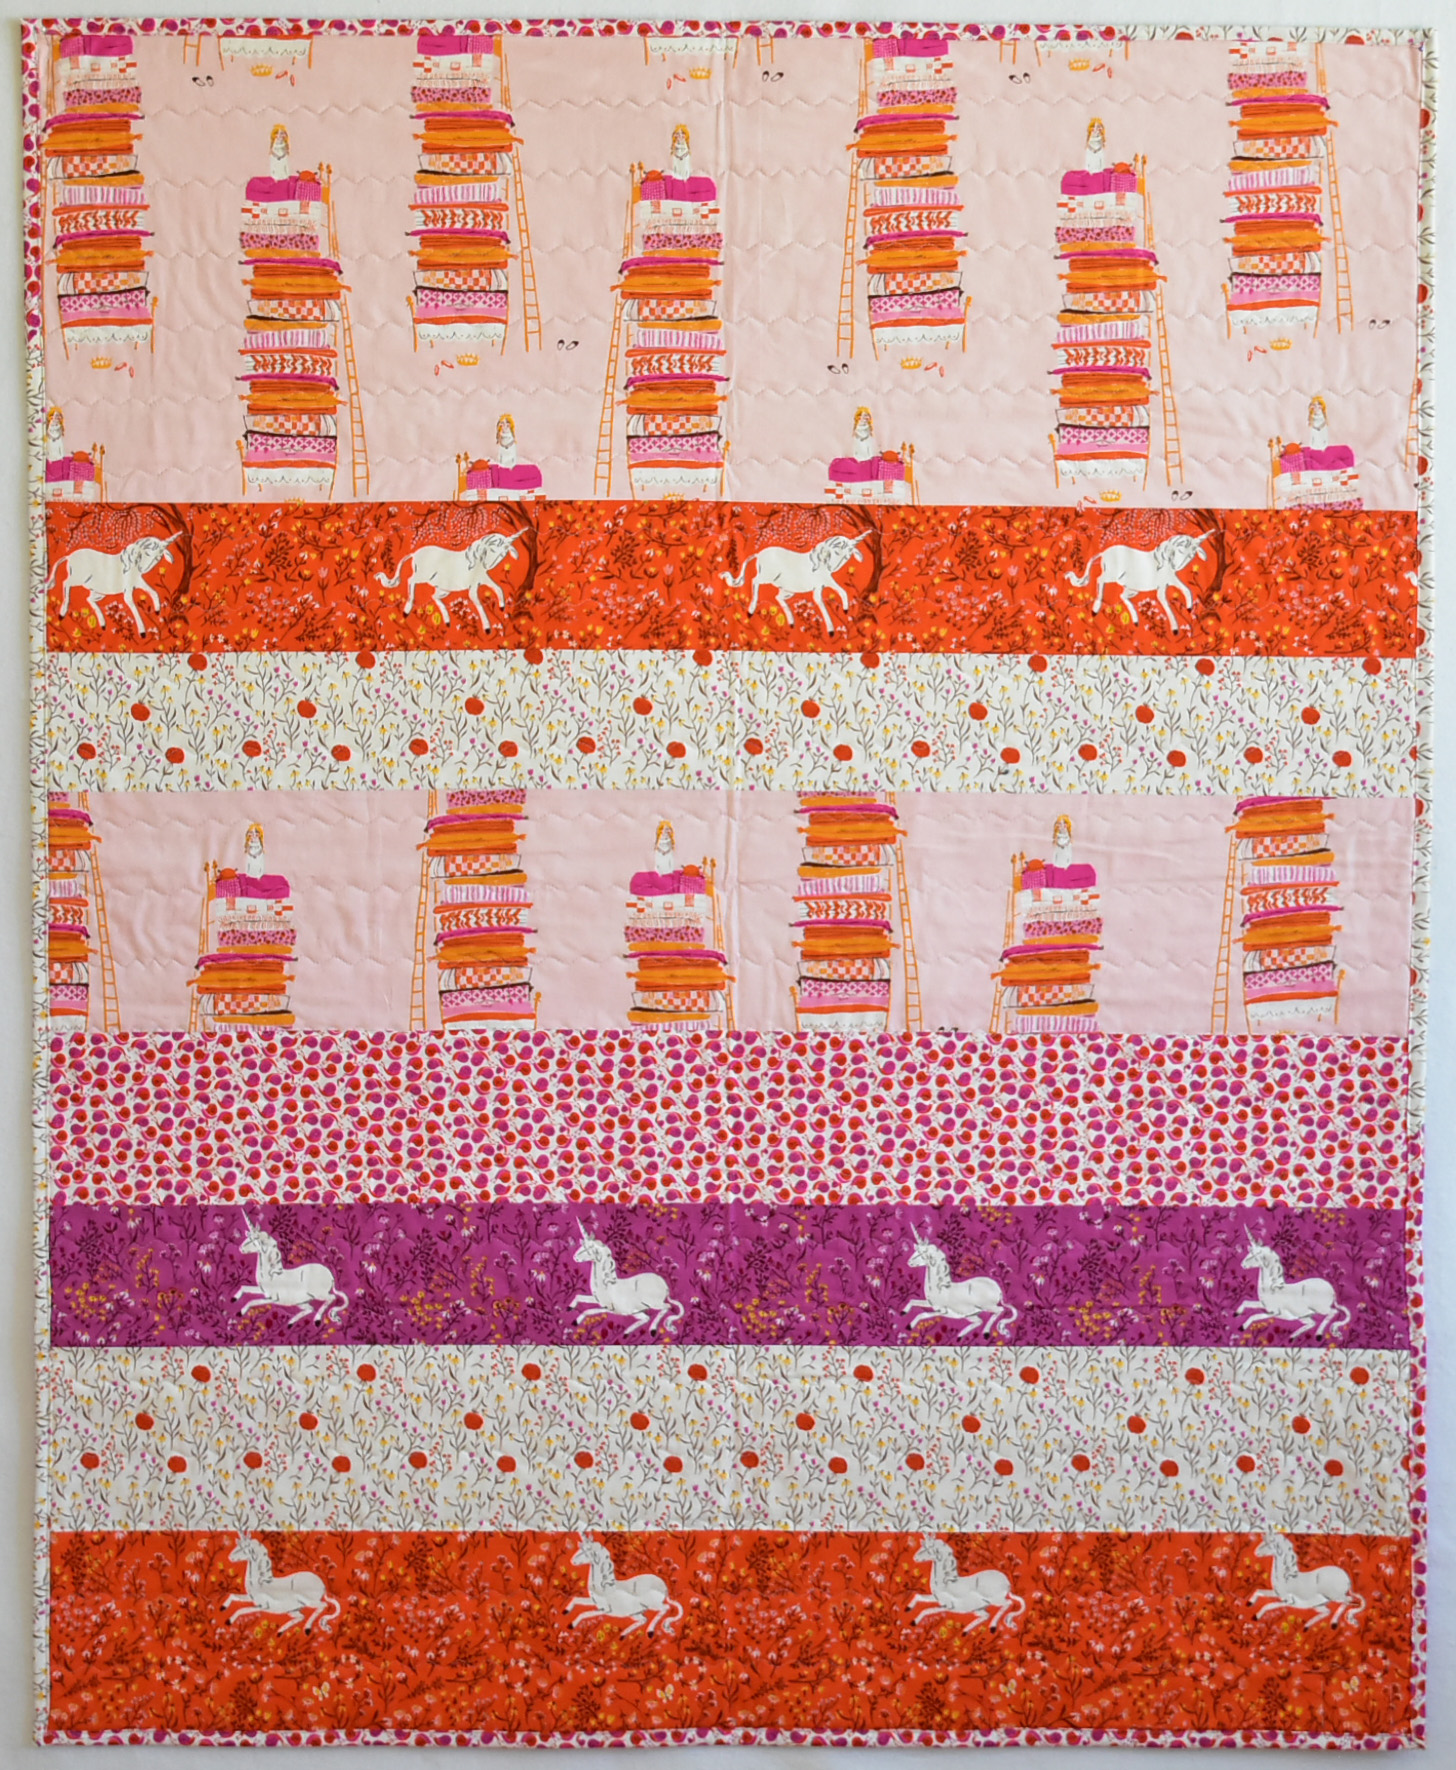 2019 Community Quilts   (17).JPG